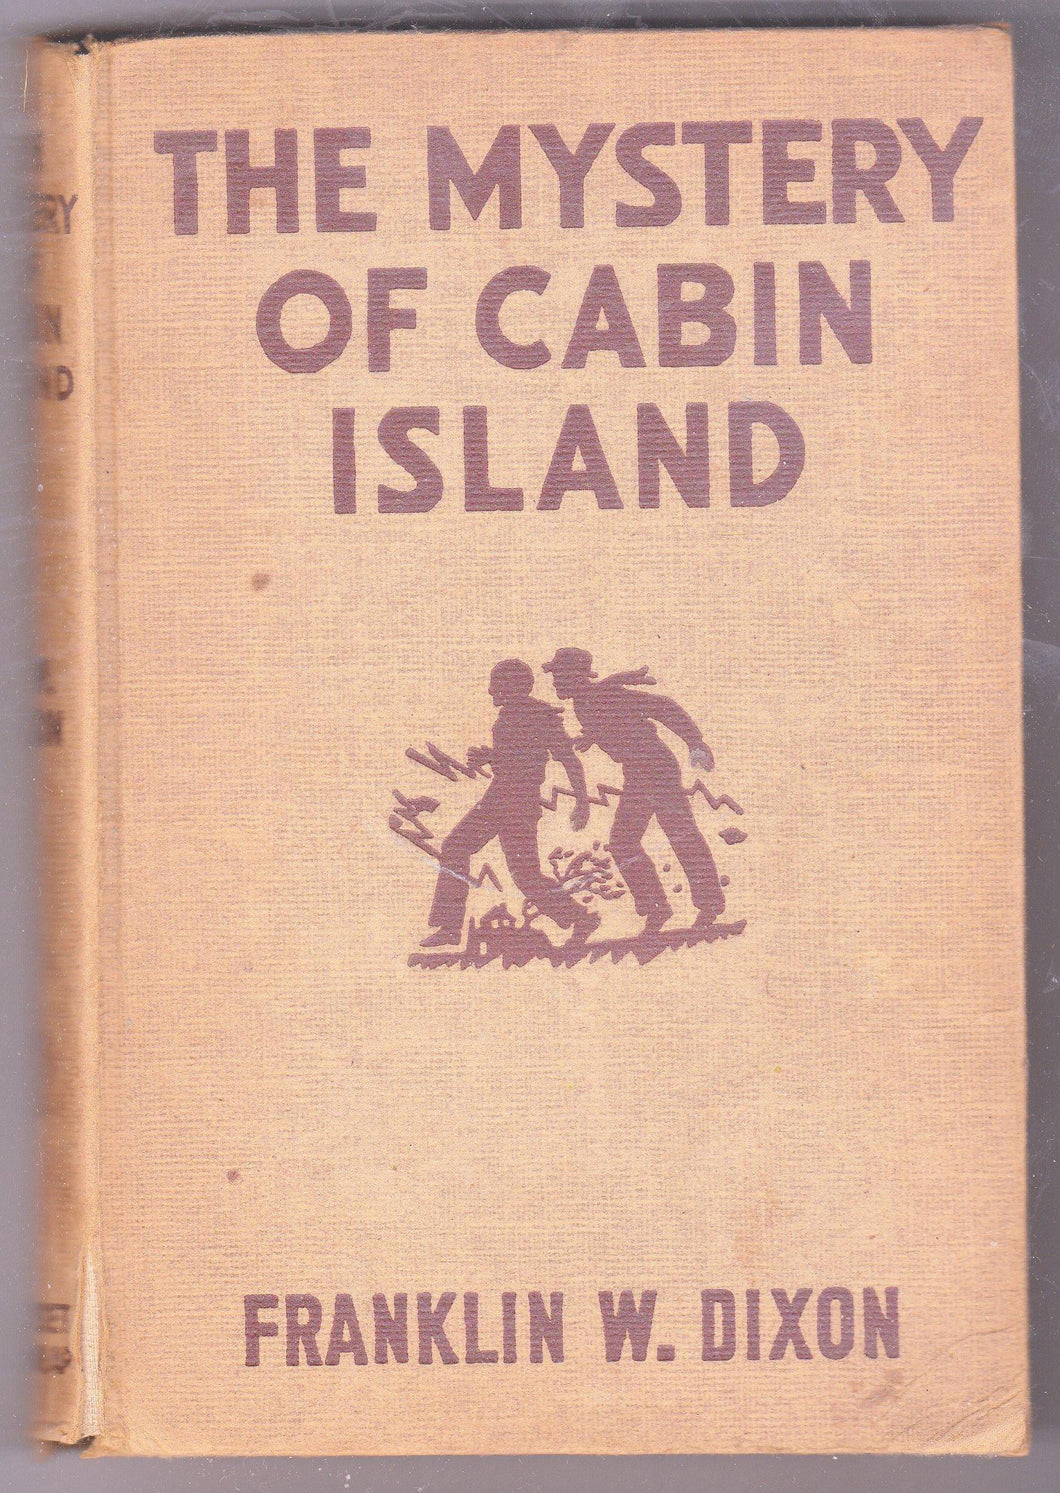 The Hardy Boys Mystery Stories The Mystery Of Cabin Island Franklin W Dixon 1950's Hardcover